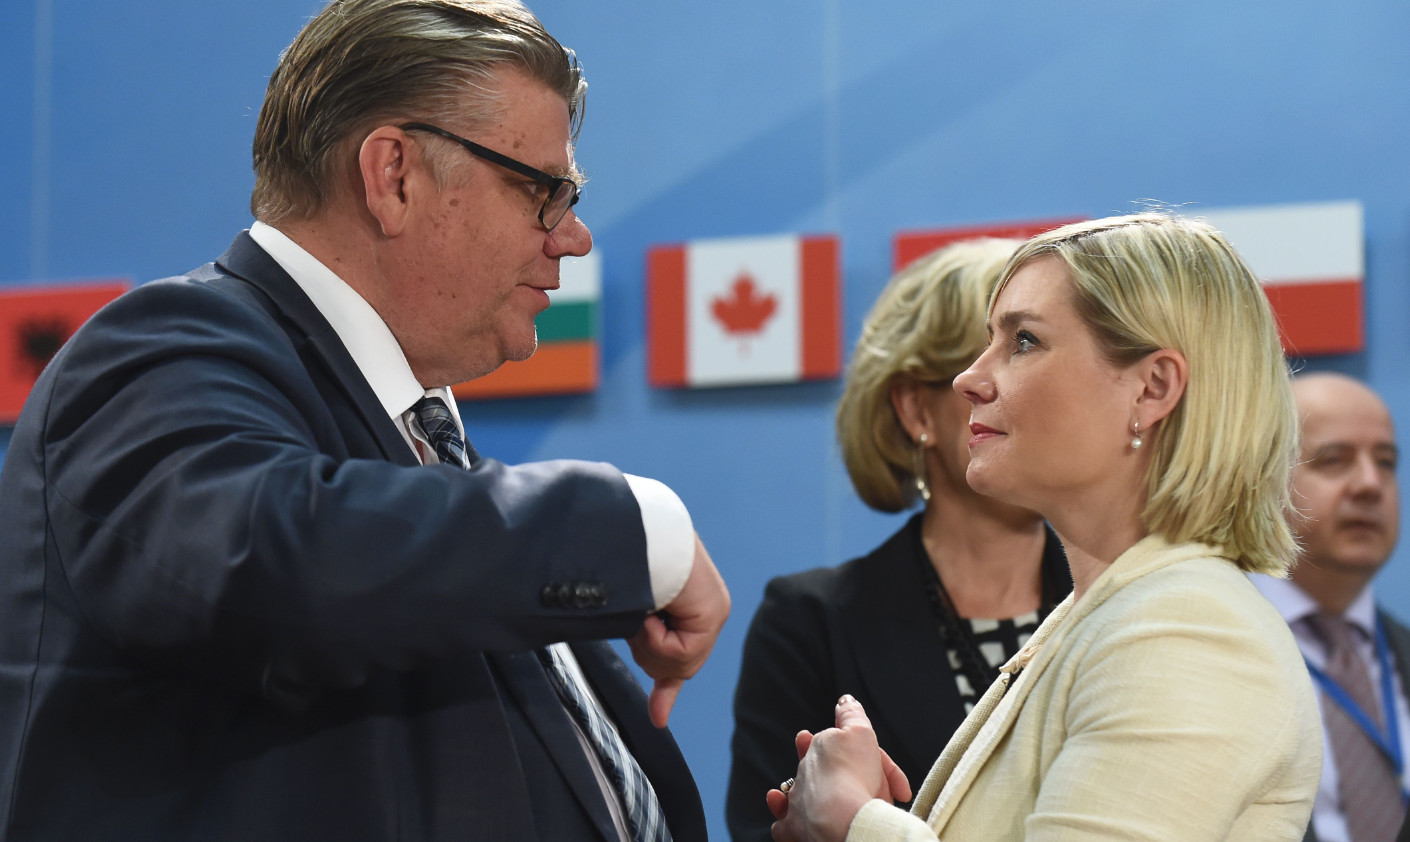 It's important to keep lines of communication open with Russia despite sanctions, said Iceland's foreign minister Lilja Alfredsdottir (right), pictured above with Finnish foreign minister Timo Soini during a foreign ministers meeting at the NATO headquarters in Brussels on May 20, 2016. (John Thys/AFP/Getty Images)